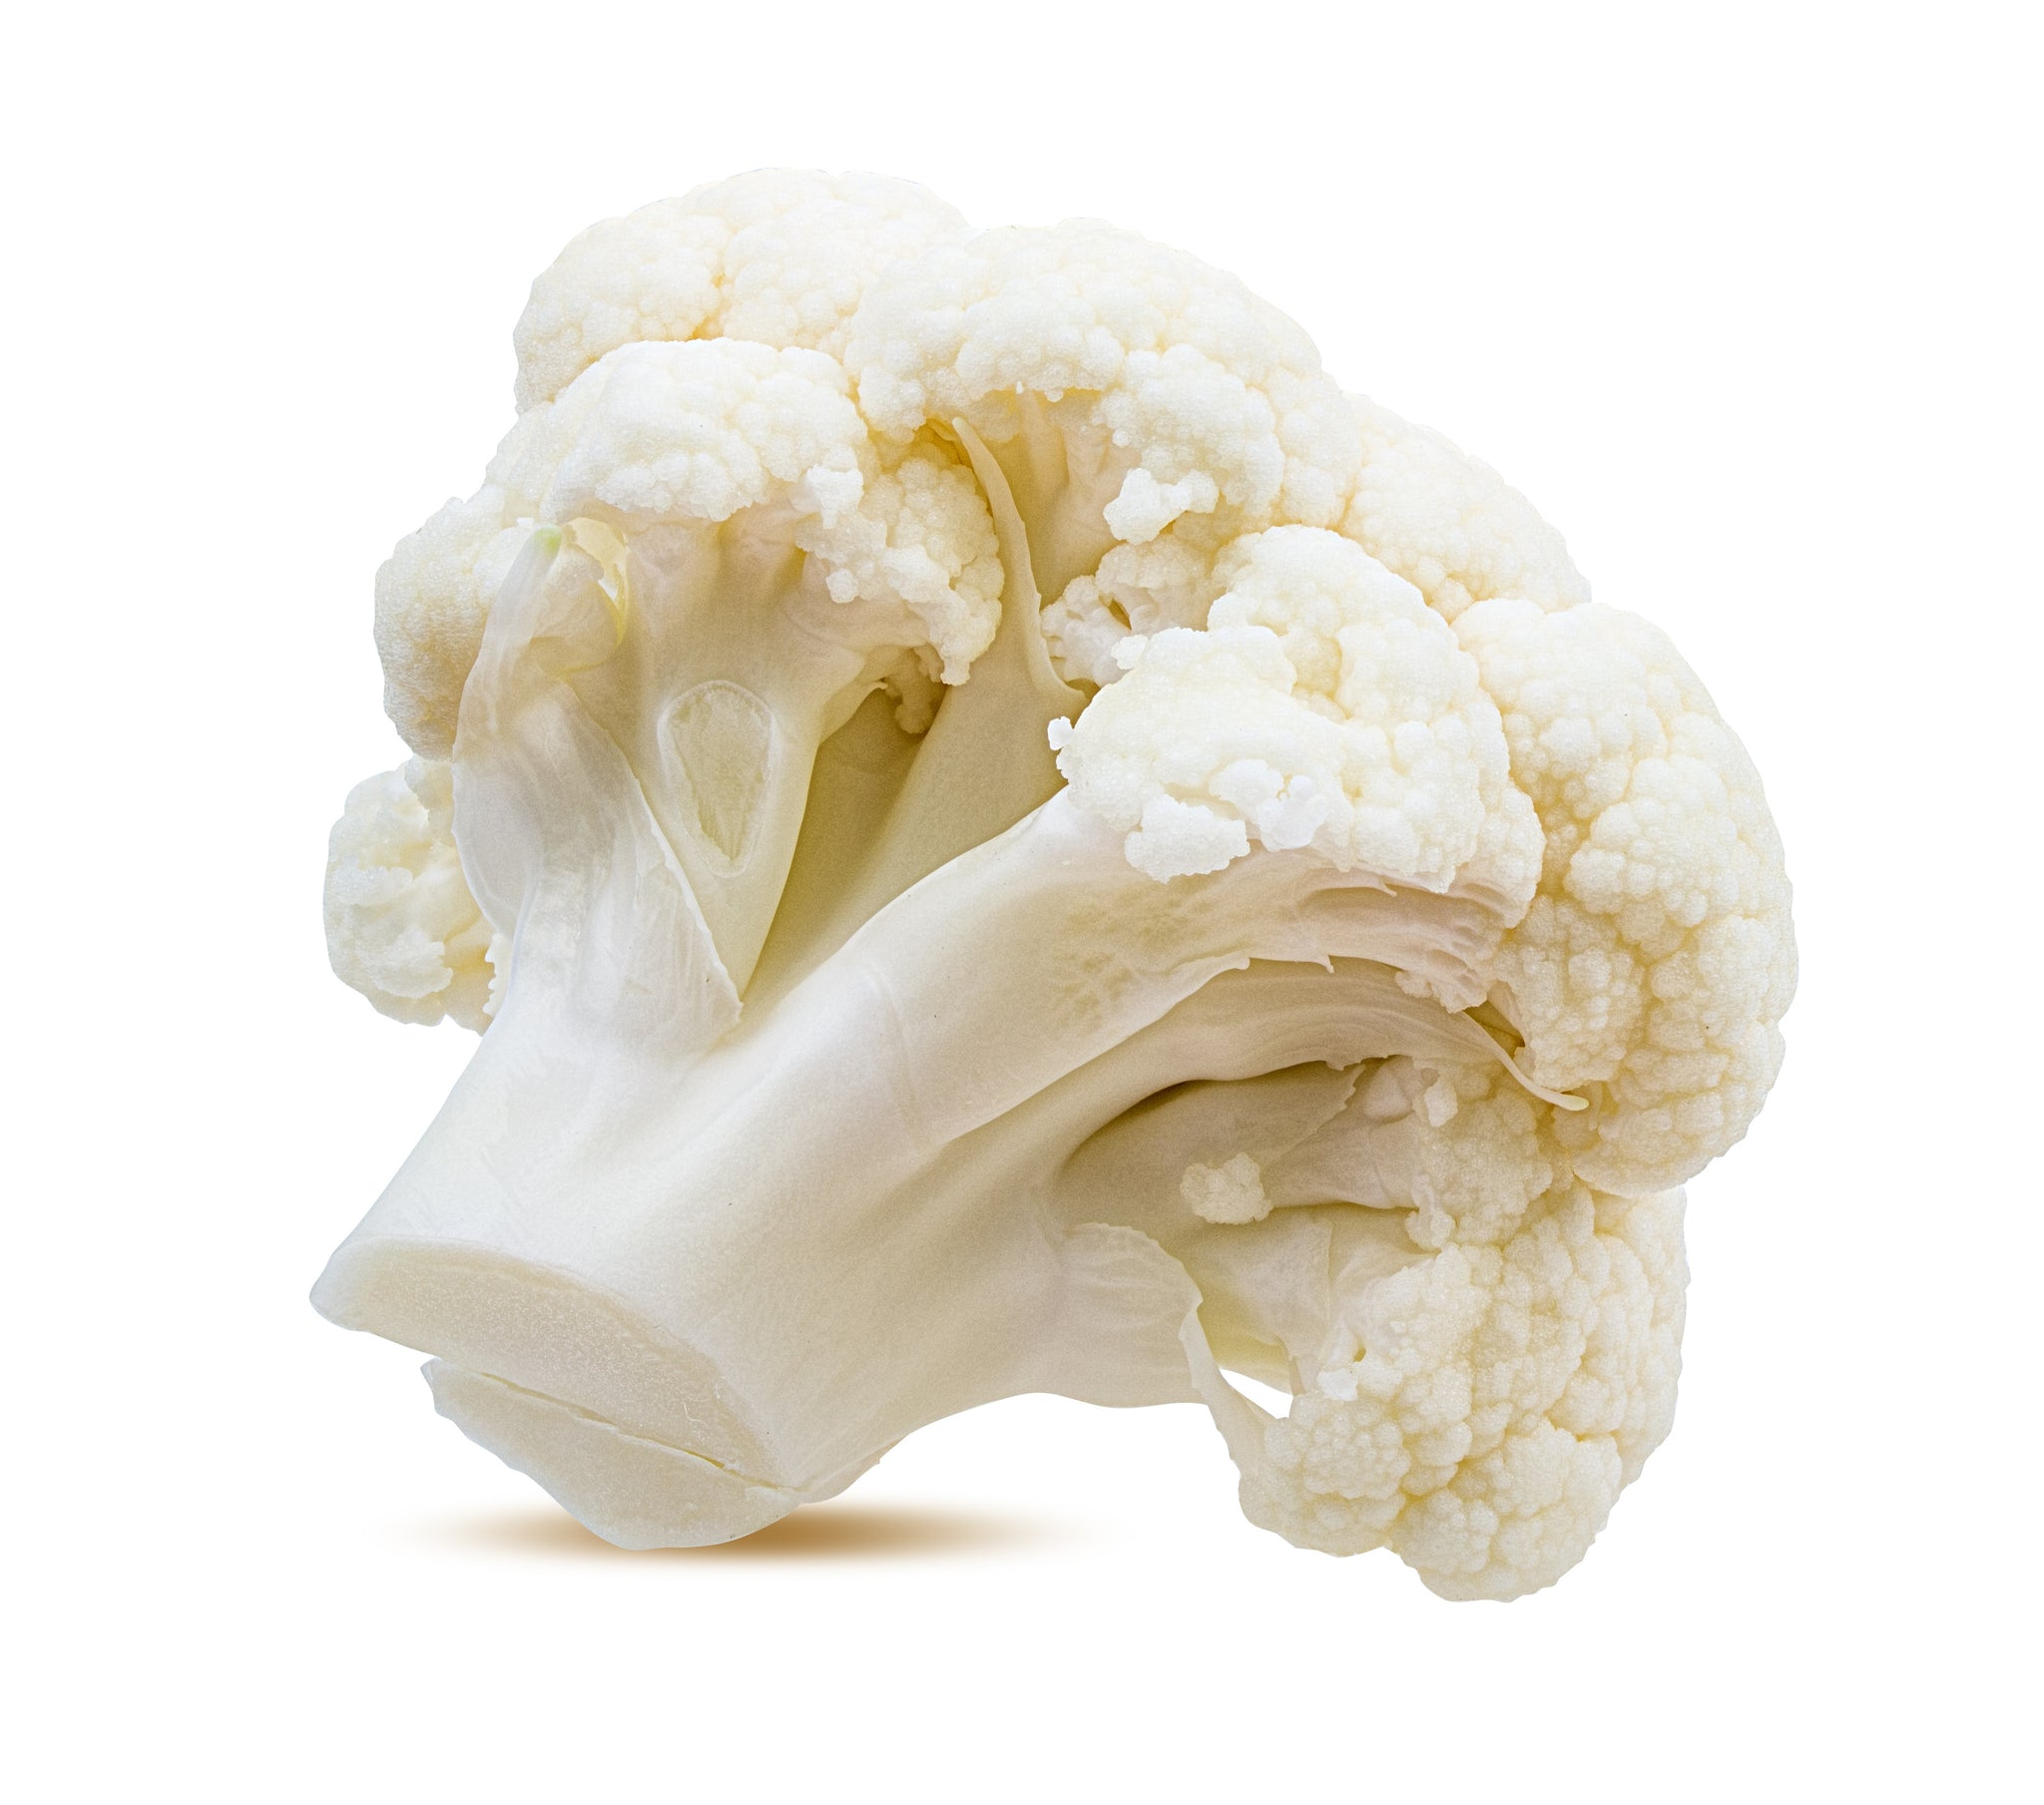 bel>Cauliflower, lb